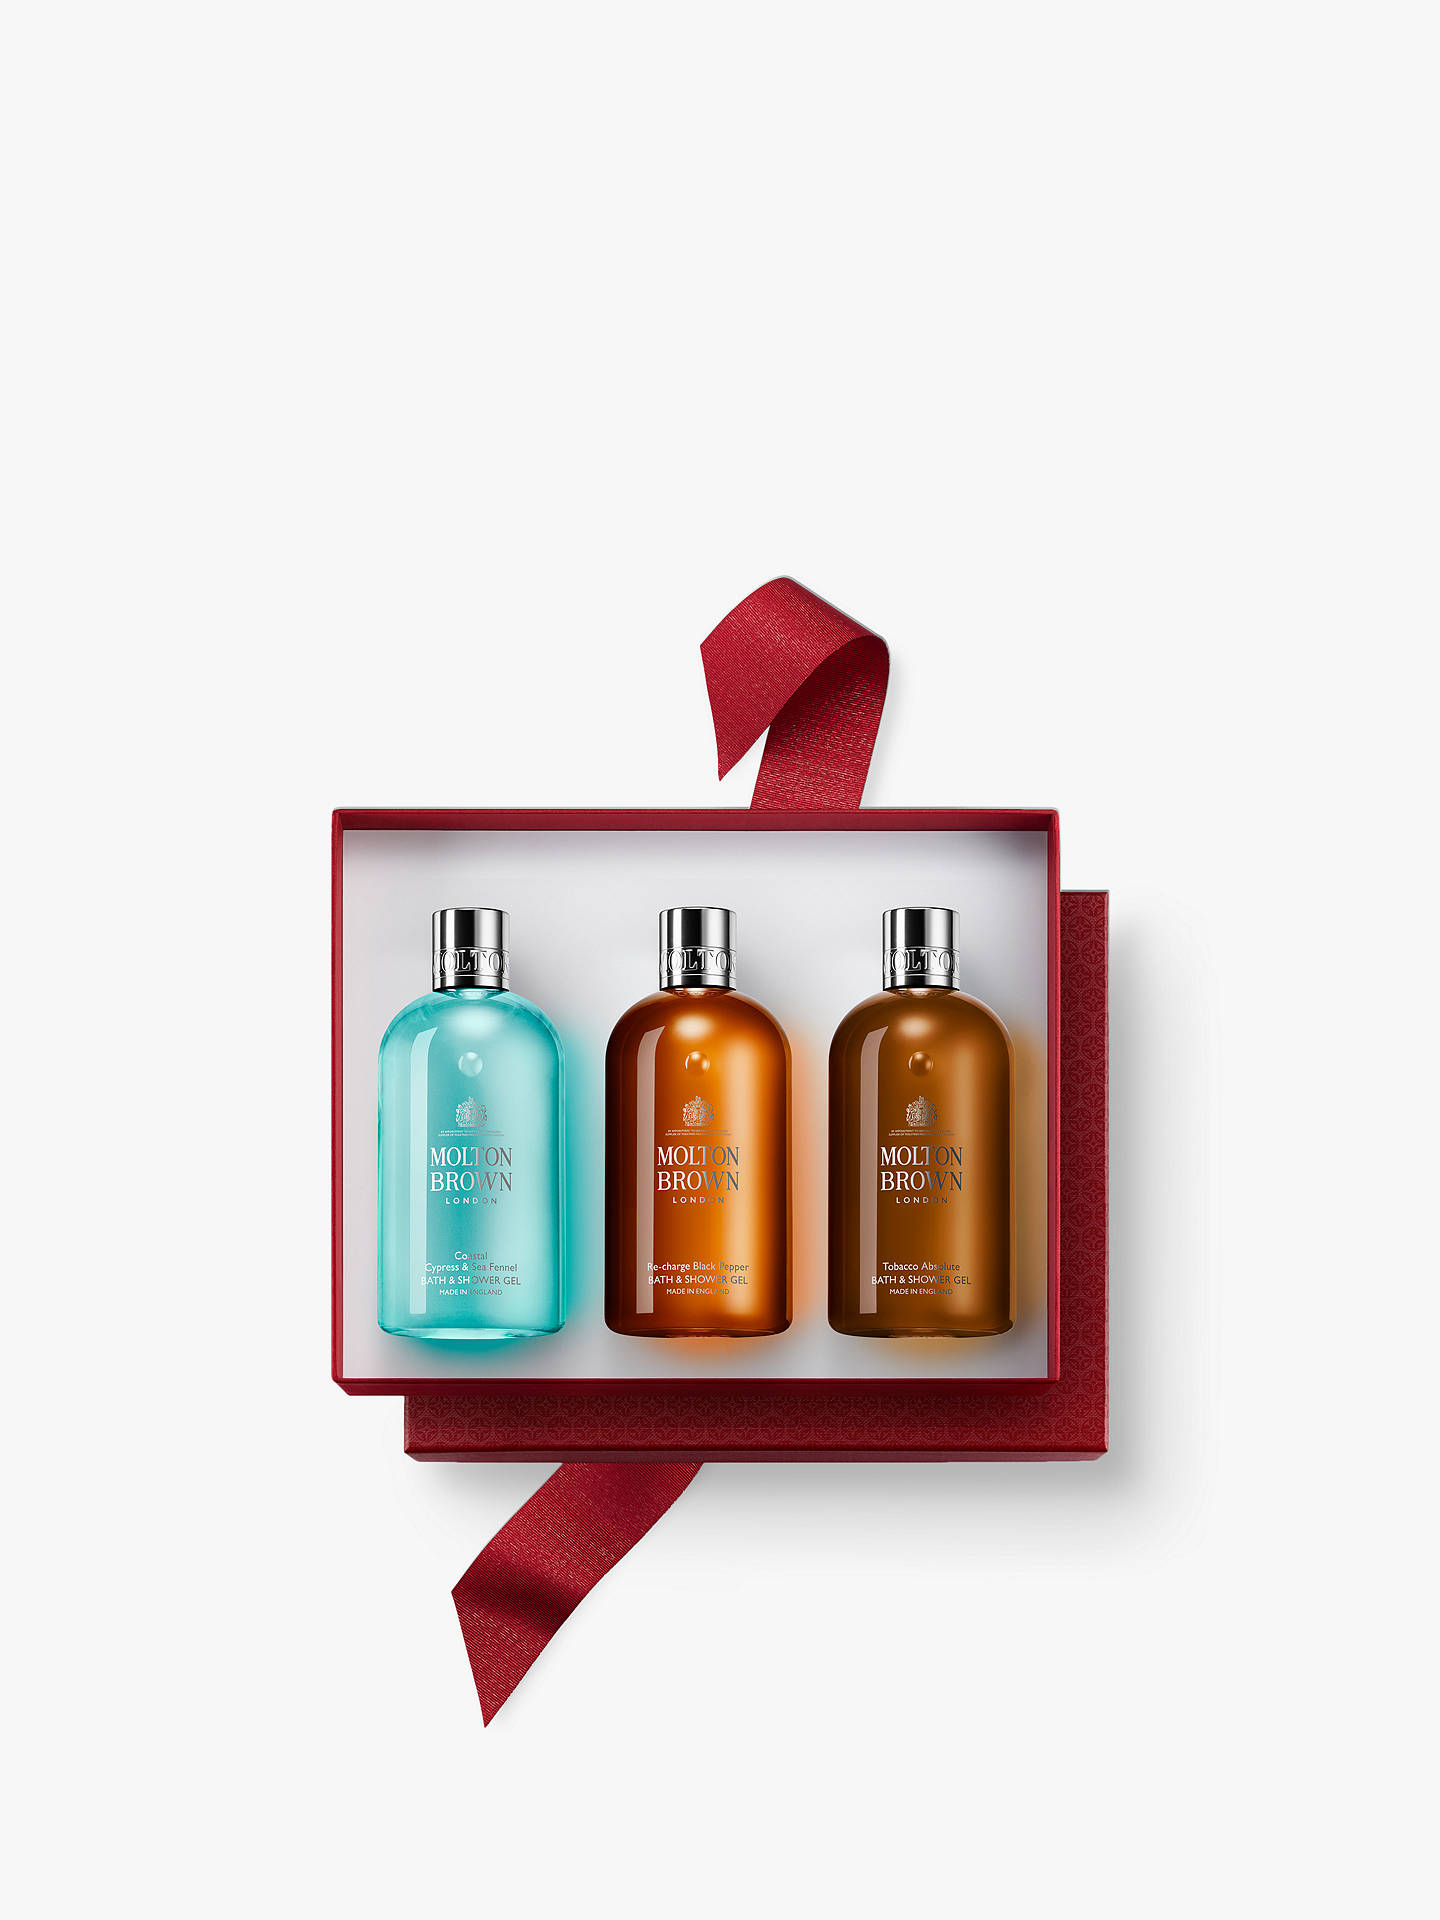 BuyMolton Brown Adventurous Experiences Men Gel Trio Body Care Gift Set Online at johnlewis.com